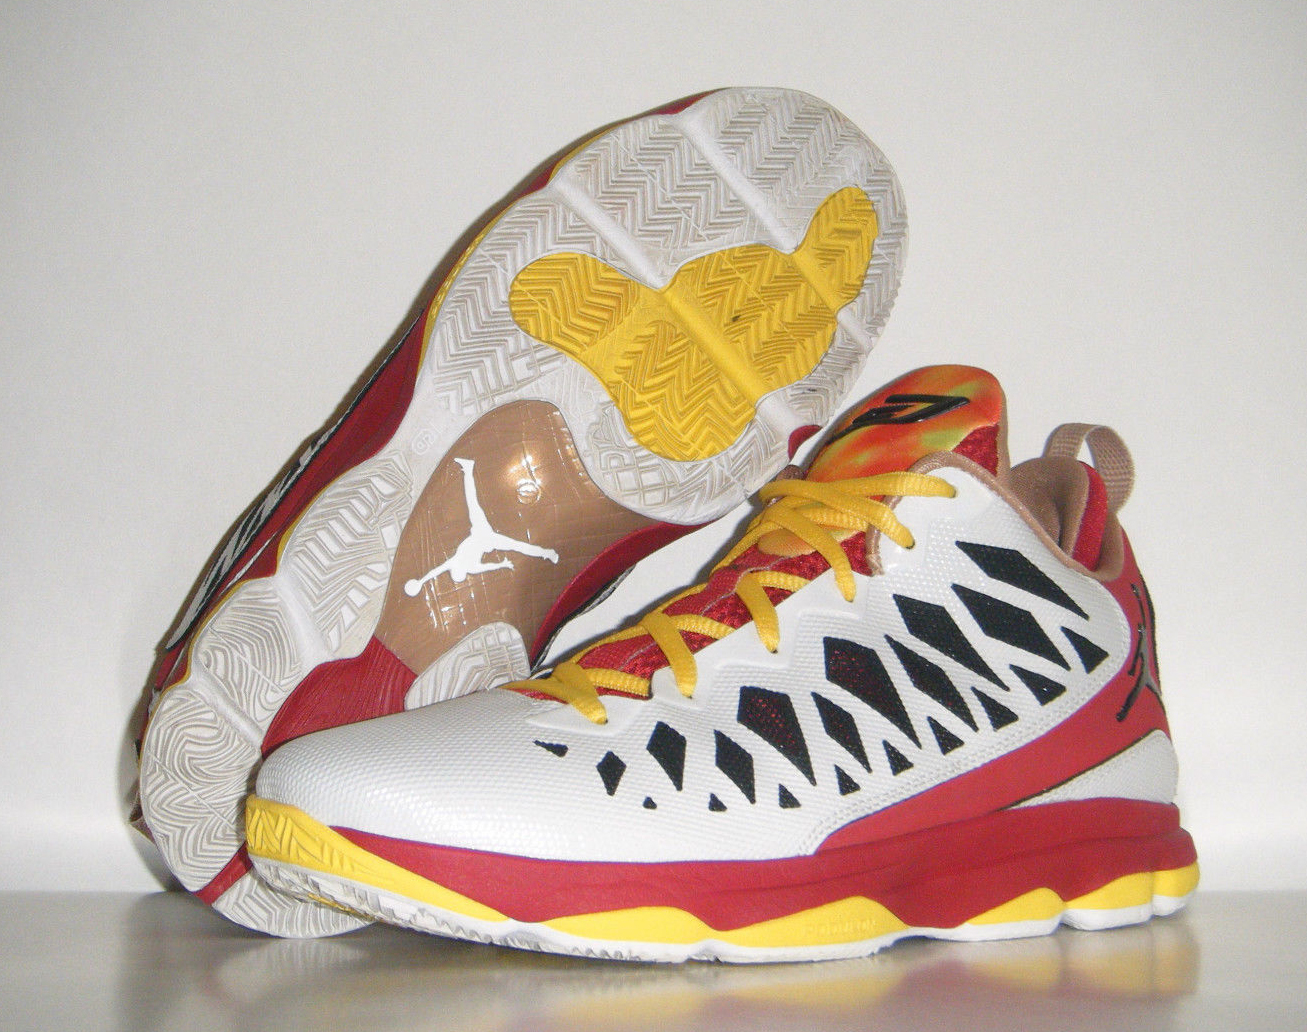 timeless design 1cc2e 0df40 Back in 2003, LeBron James took the nation by storm with his dominant  performances in High School and it led to strong showings in the year end  All-Star ...